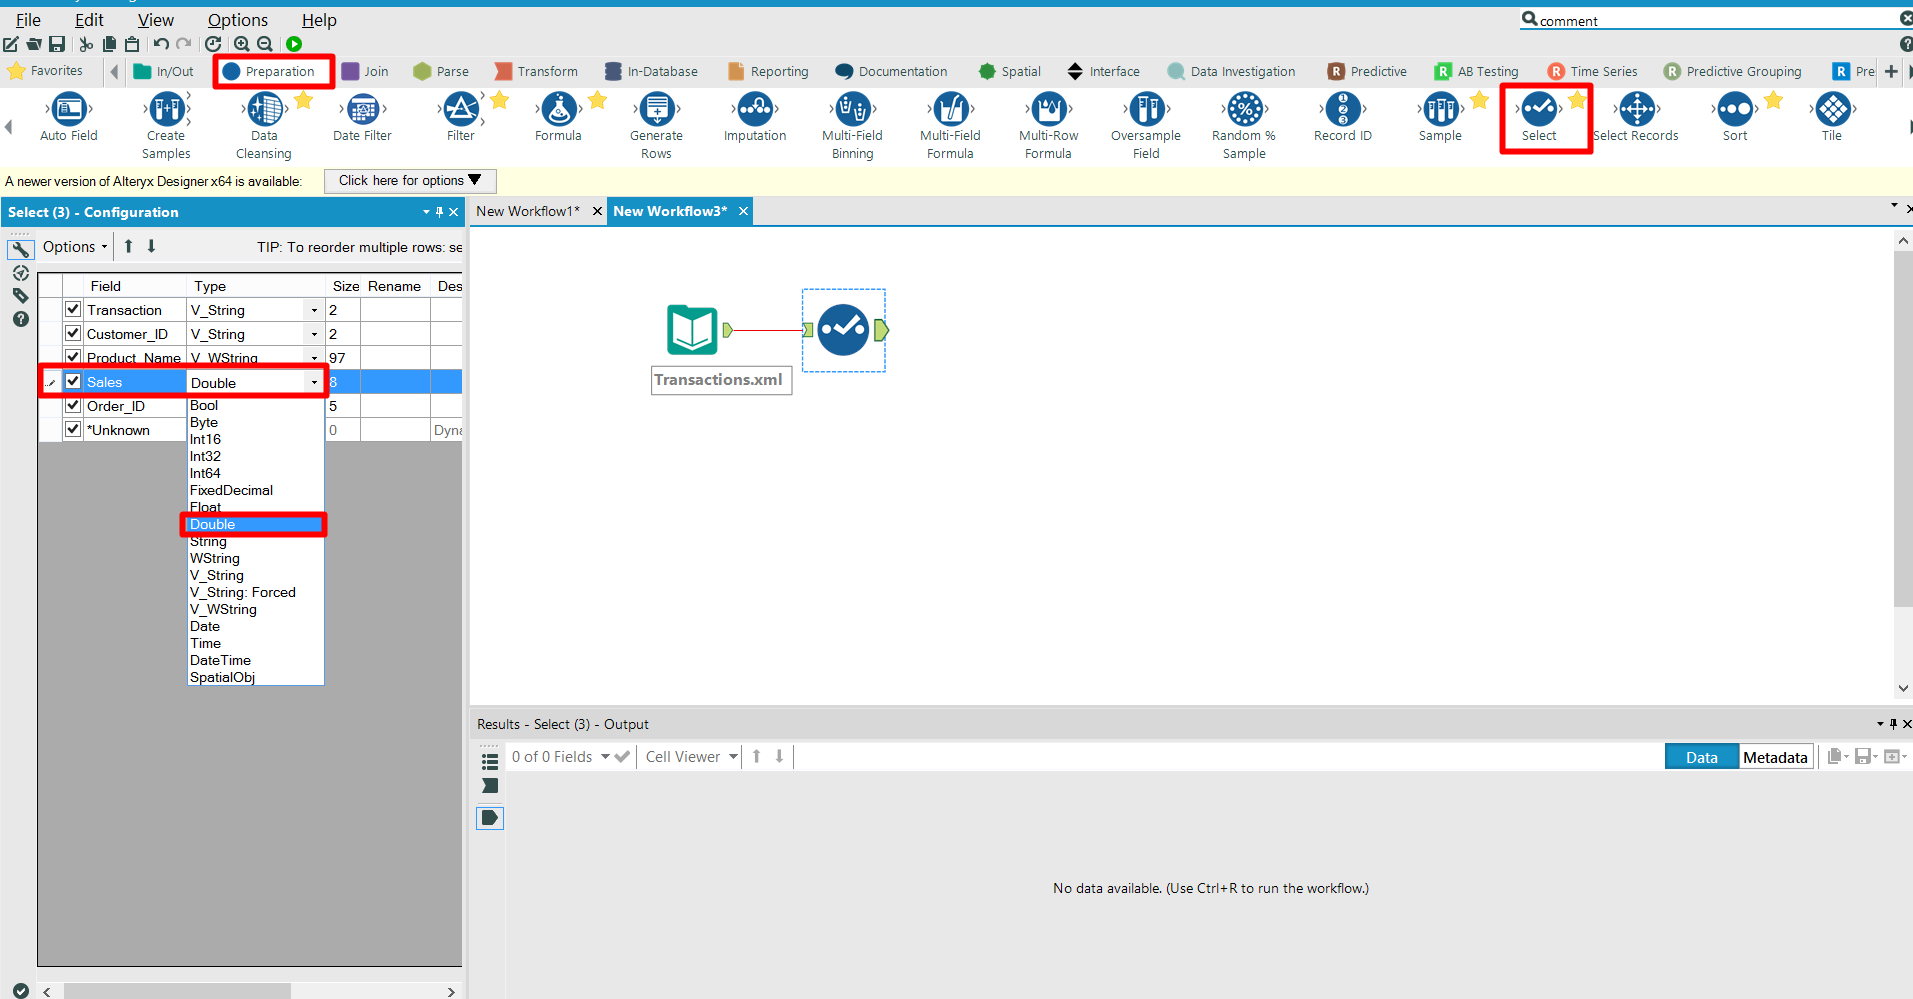 How to use Alteryx?